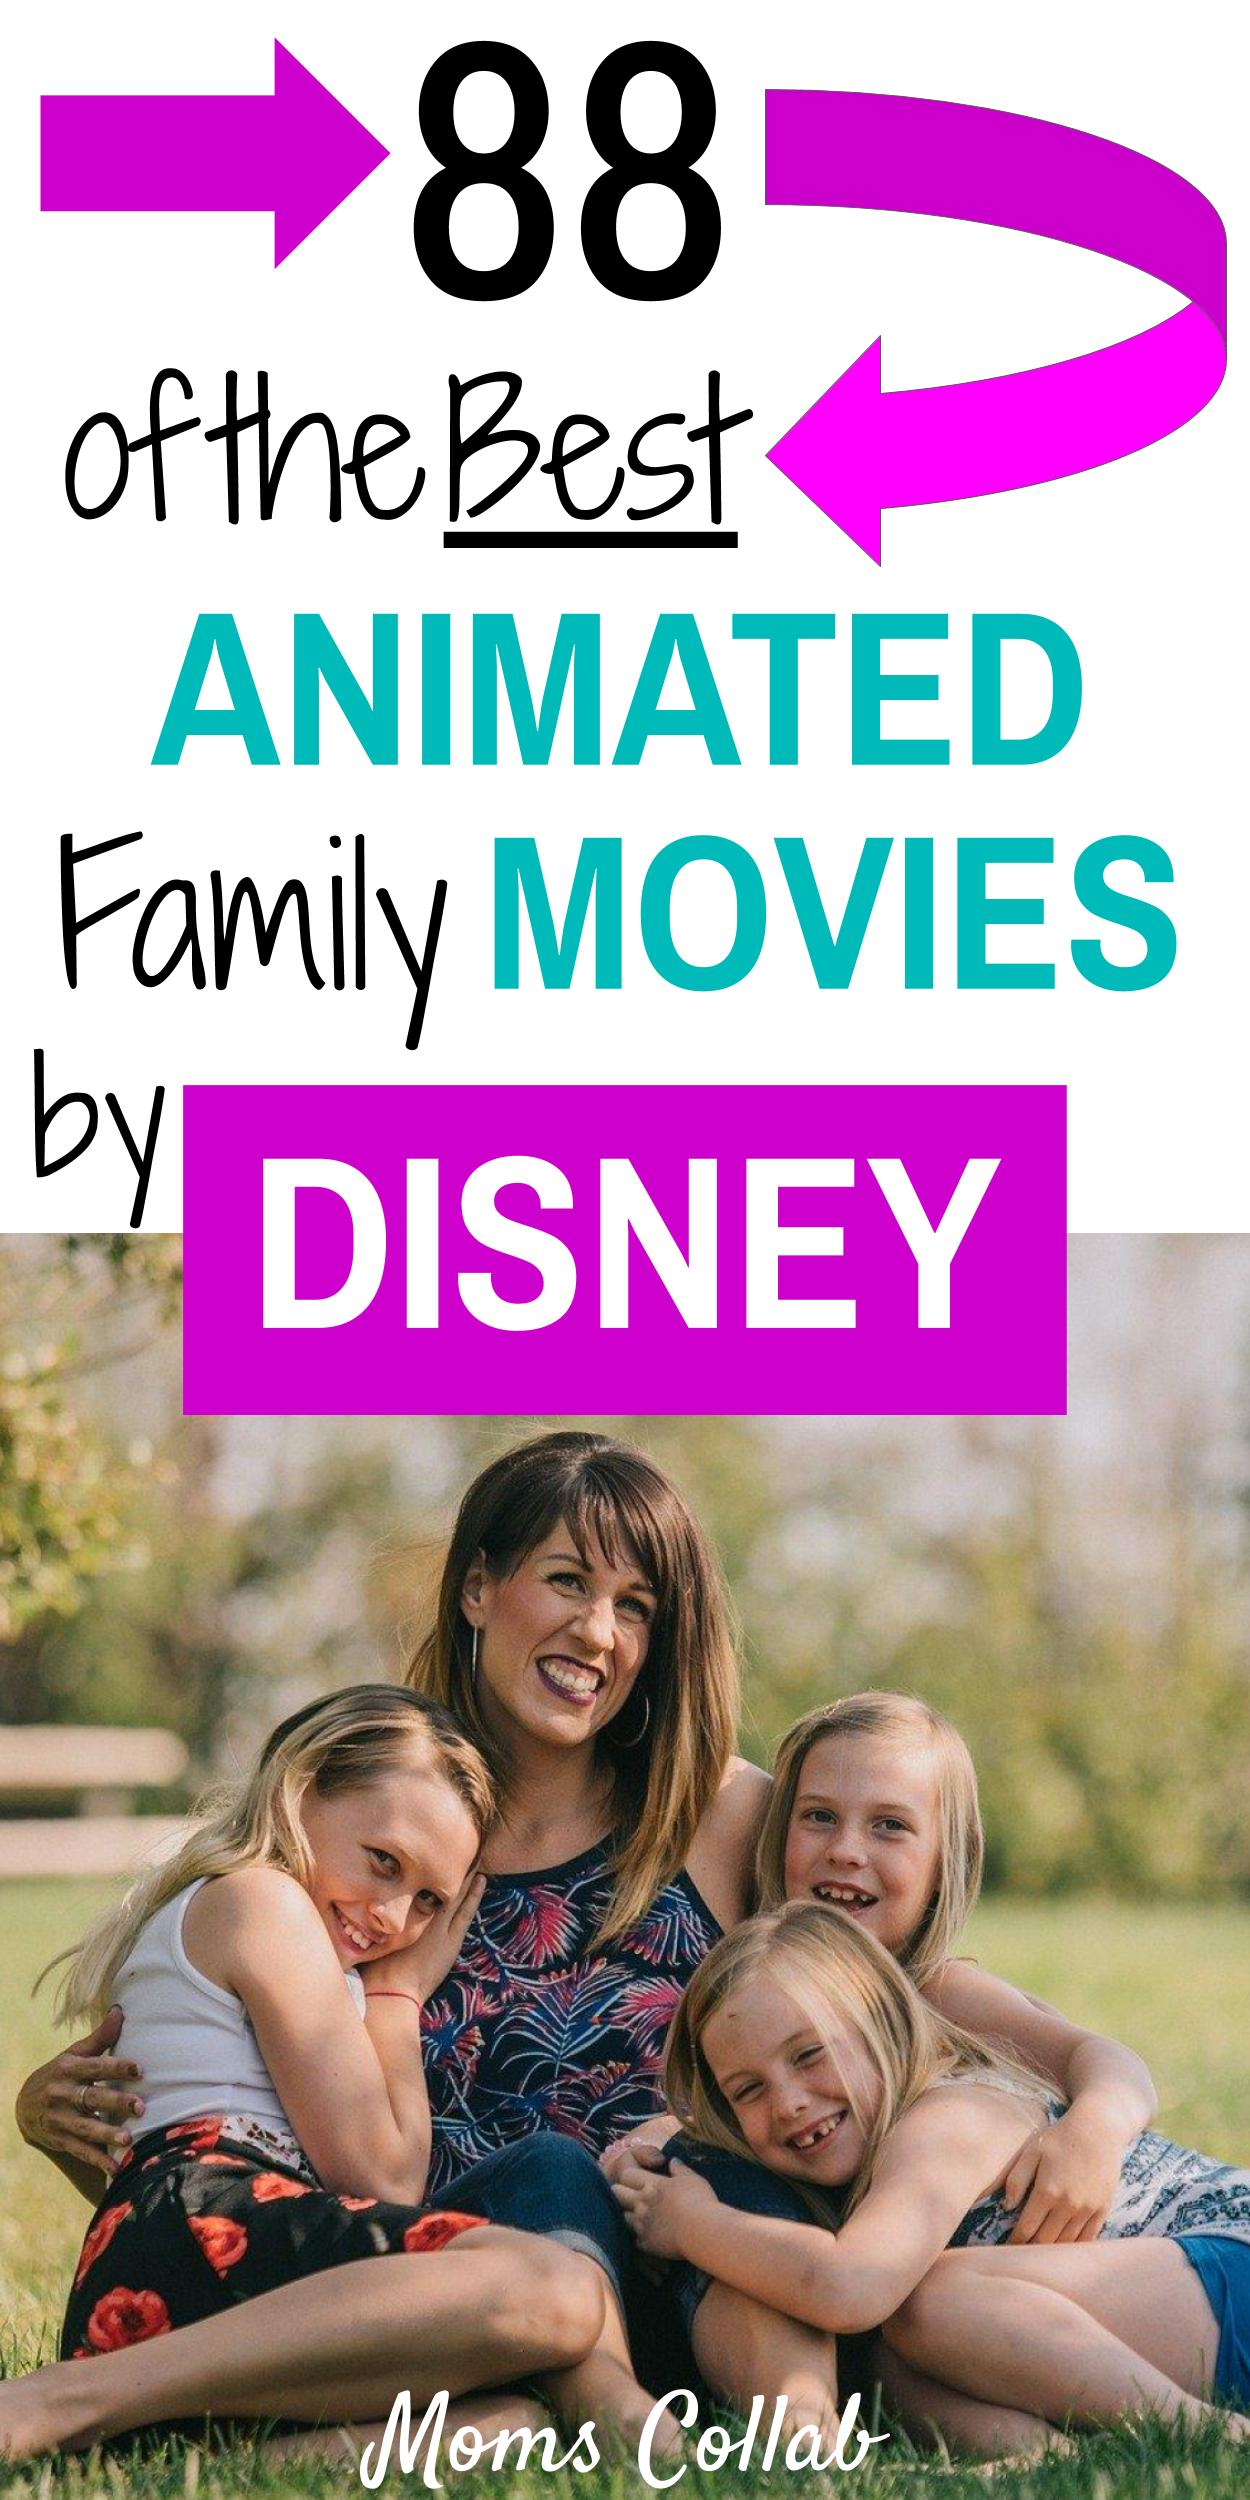 Best family movies by Disney